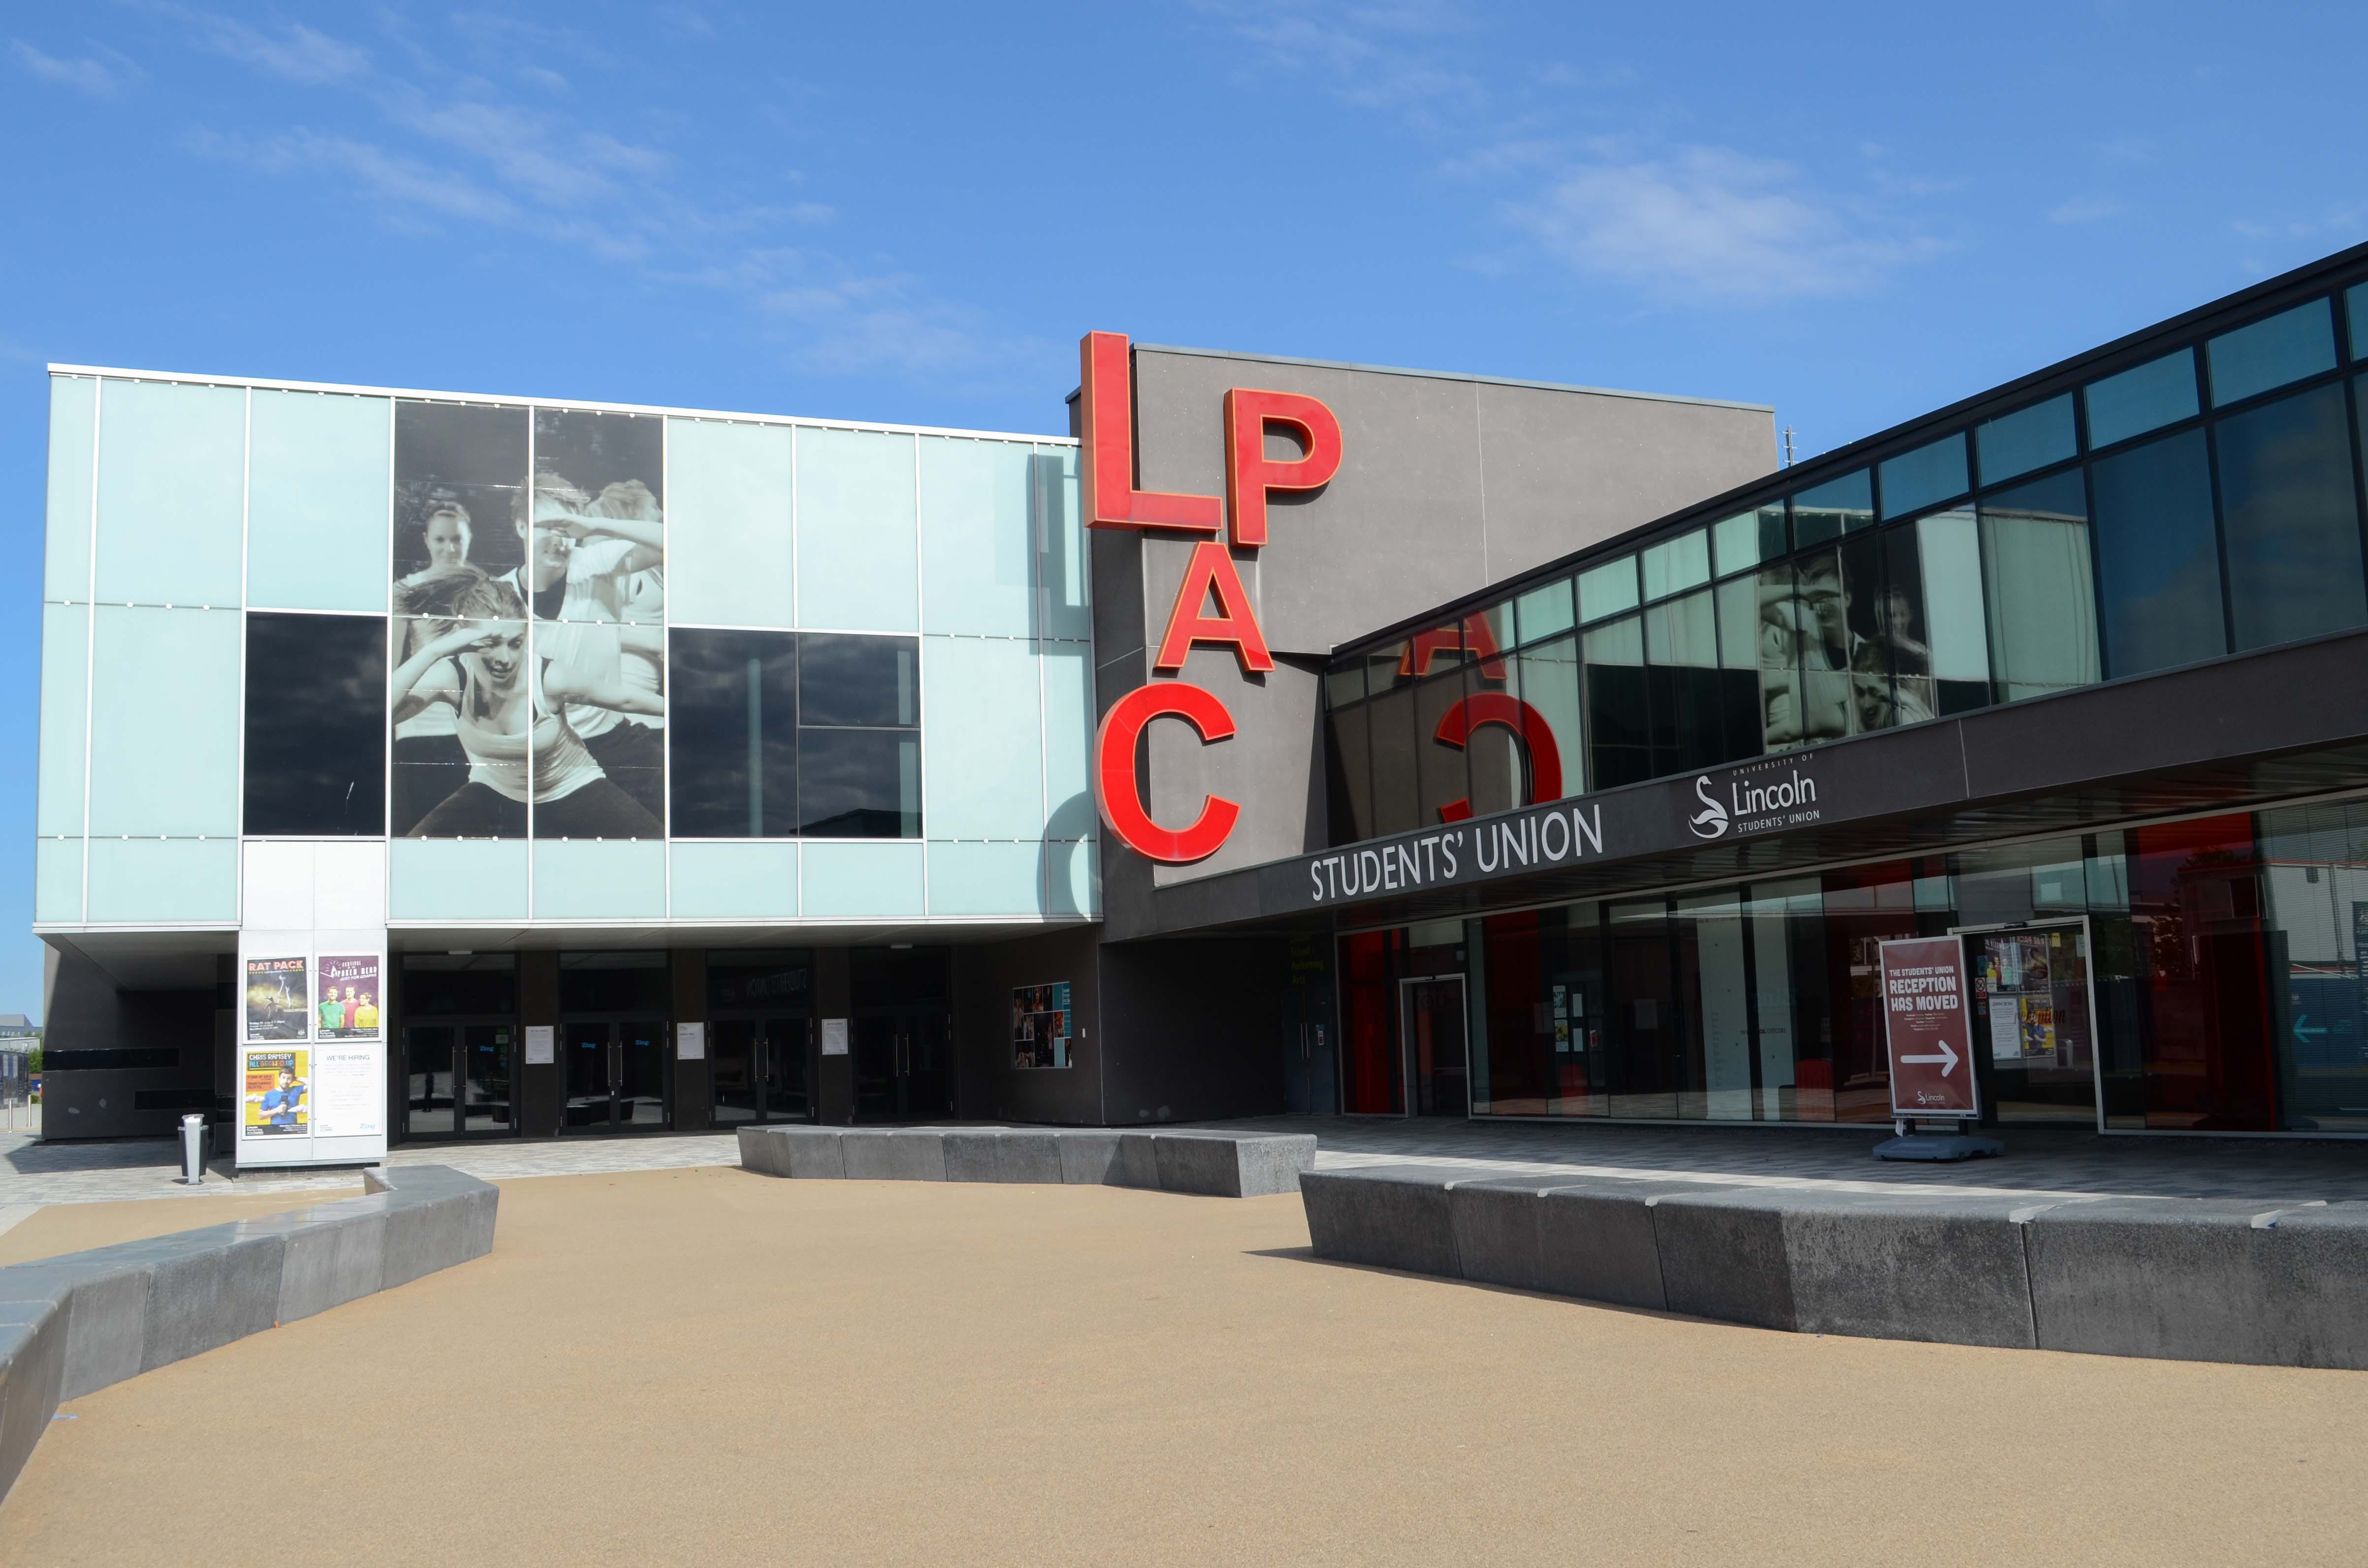 """Image of a theatre, a large light blue and grey building with """"LPAC"""" signage in red"""